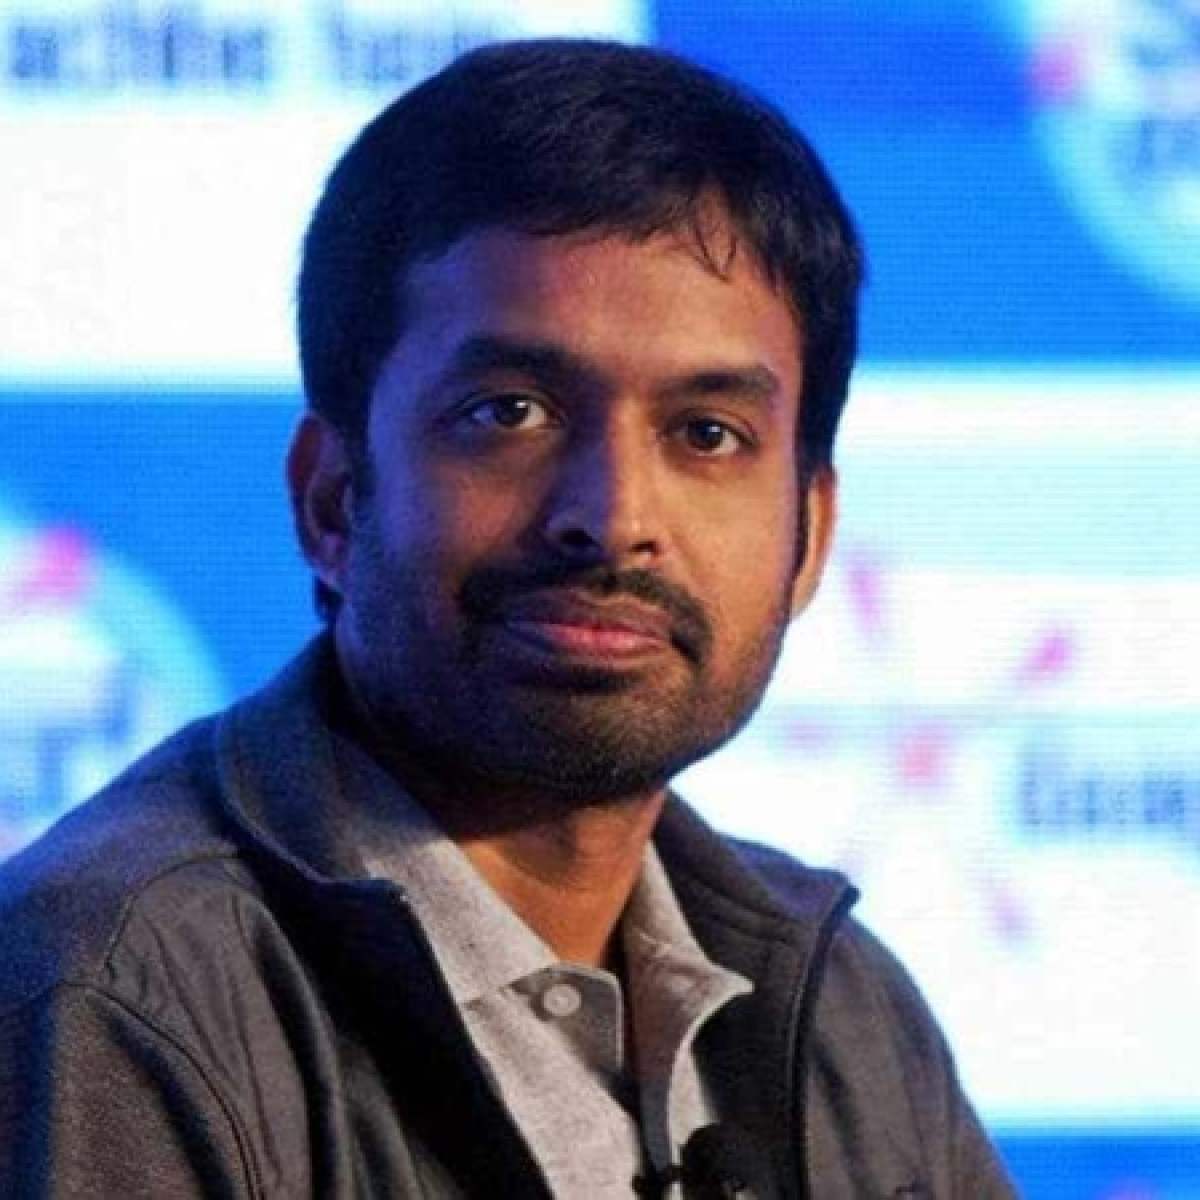 'Fund groups, not persons', Badminton coach Pullela Gopichand's suggestion